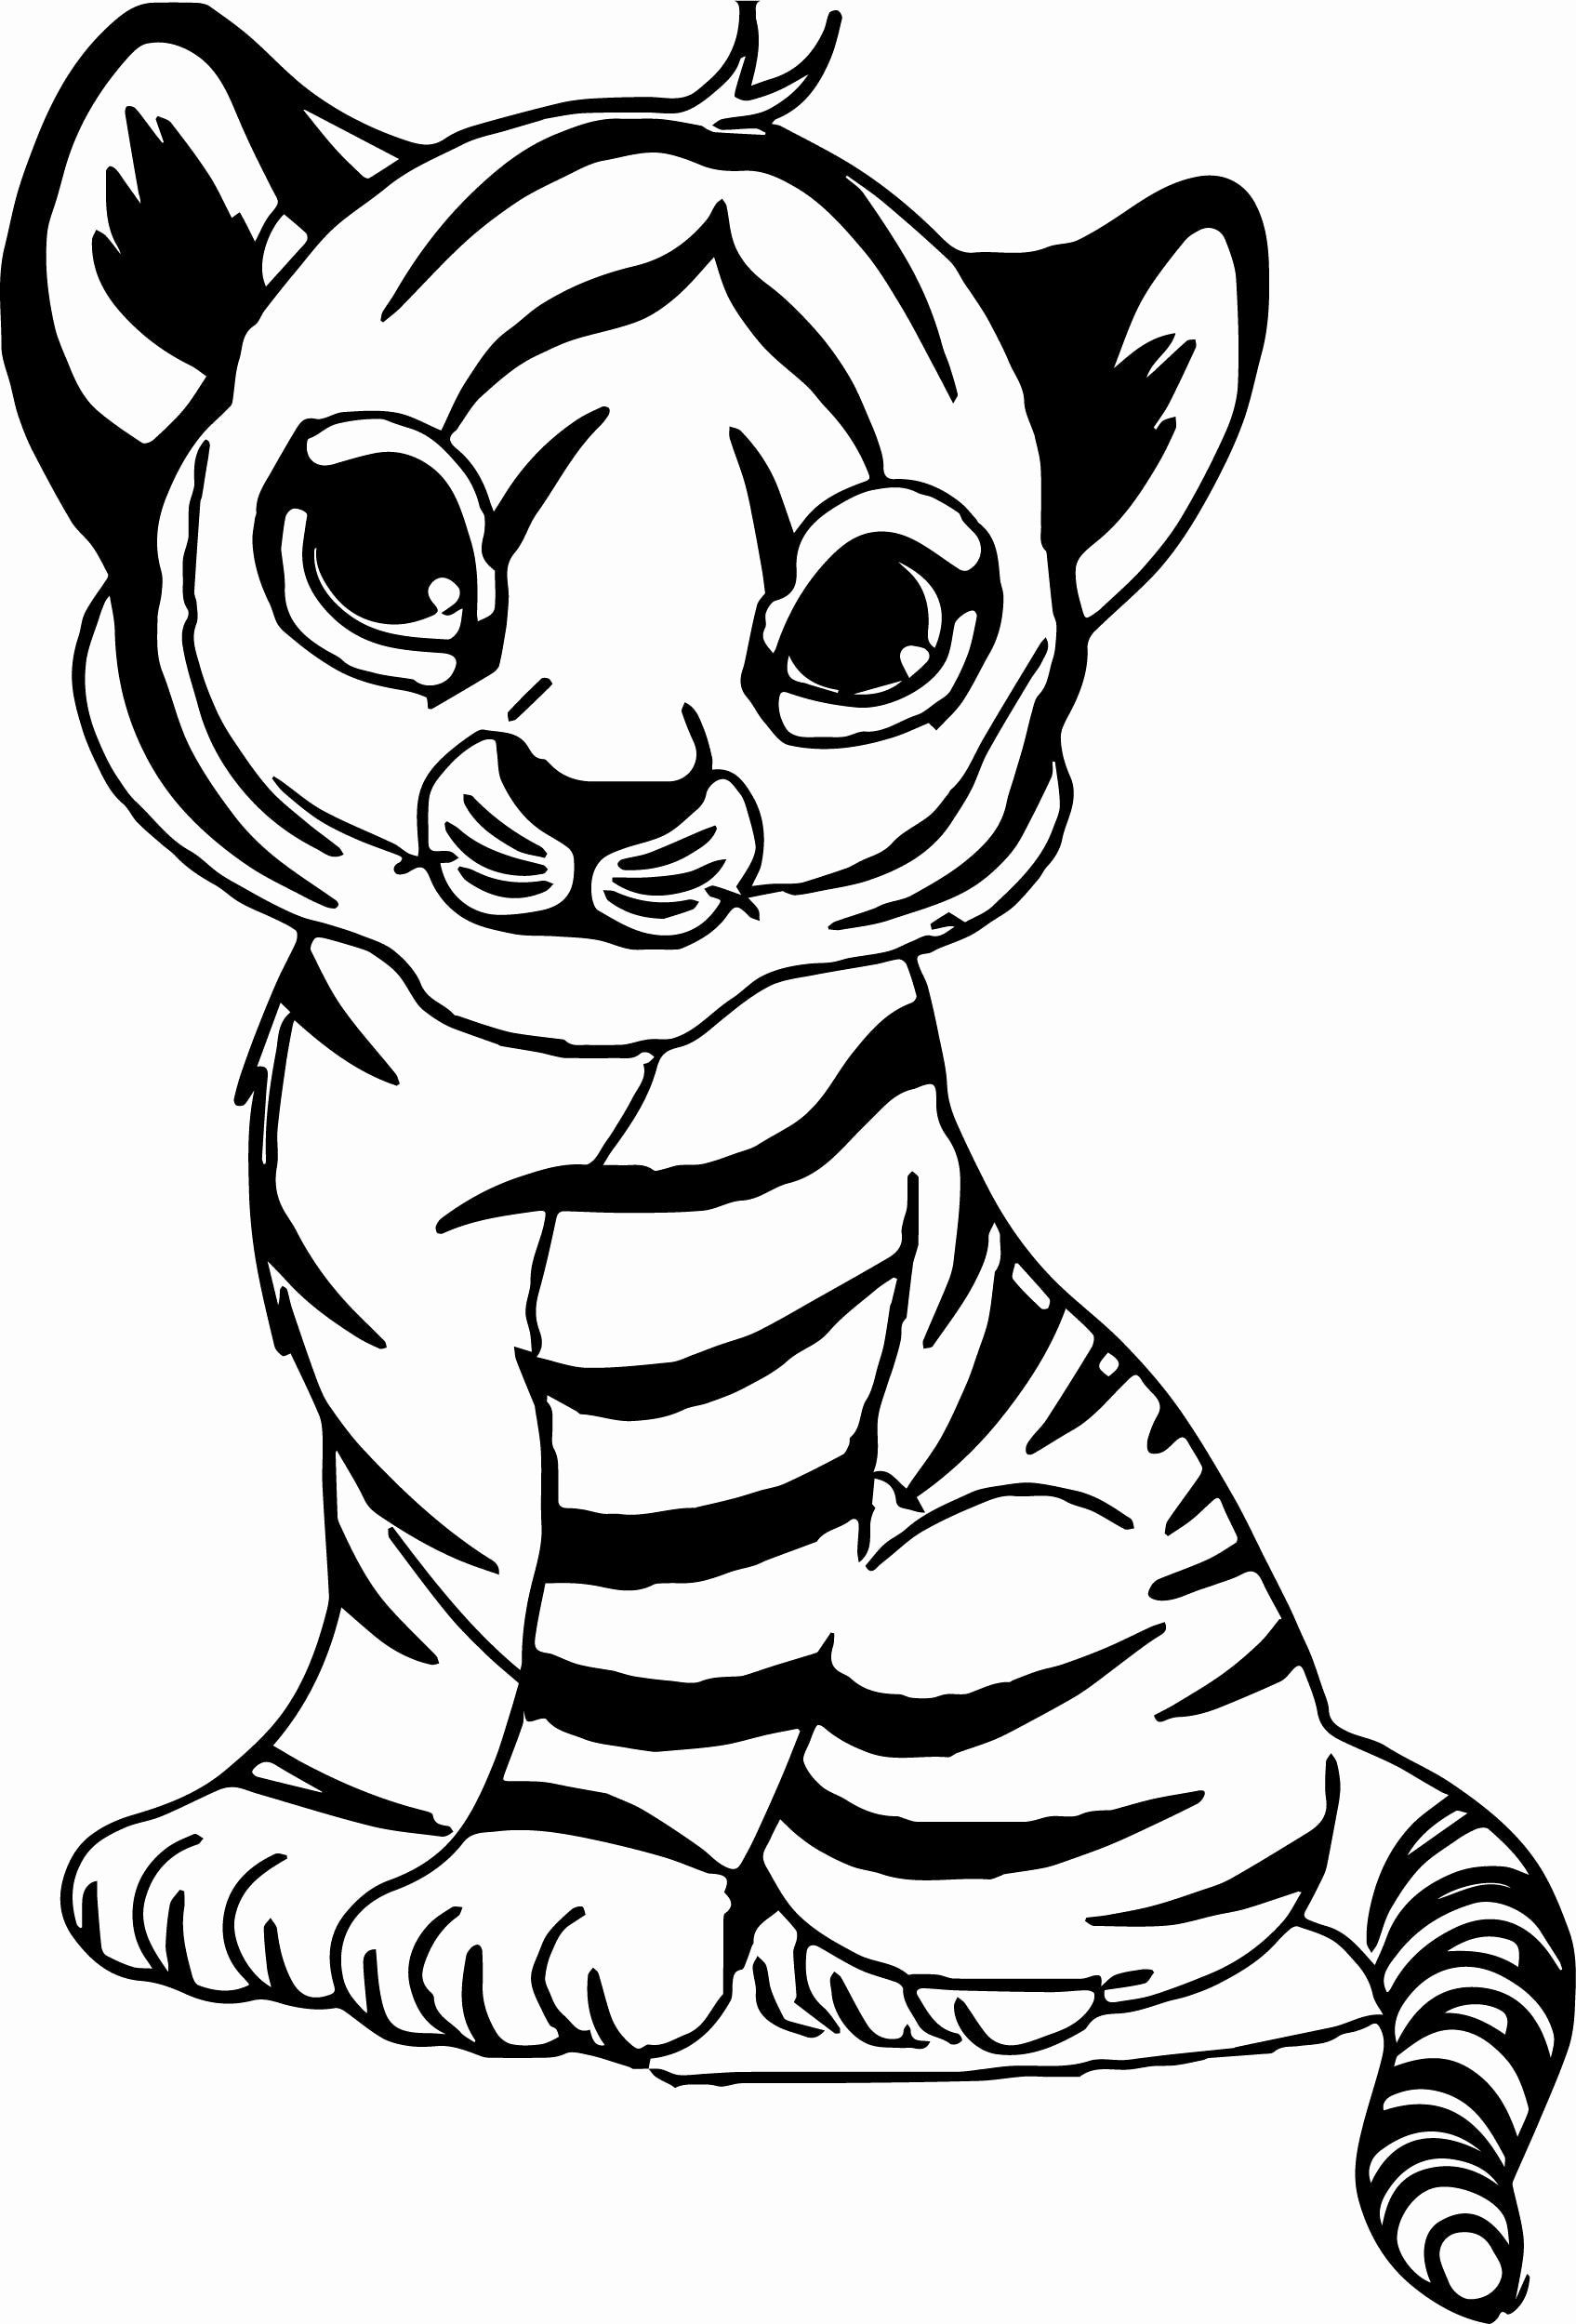 free baby animal coloring pages printable baby animal coloring pages awesome nice cute coloring baby free animal pages